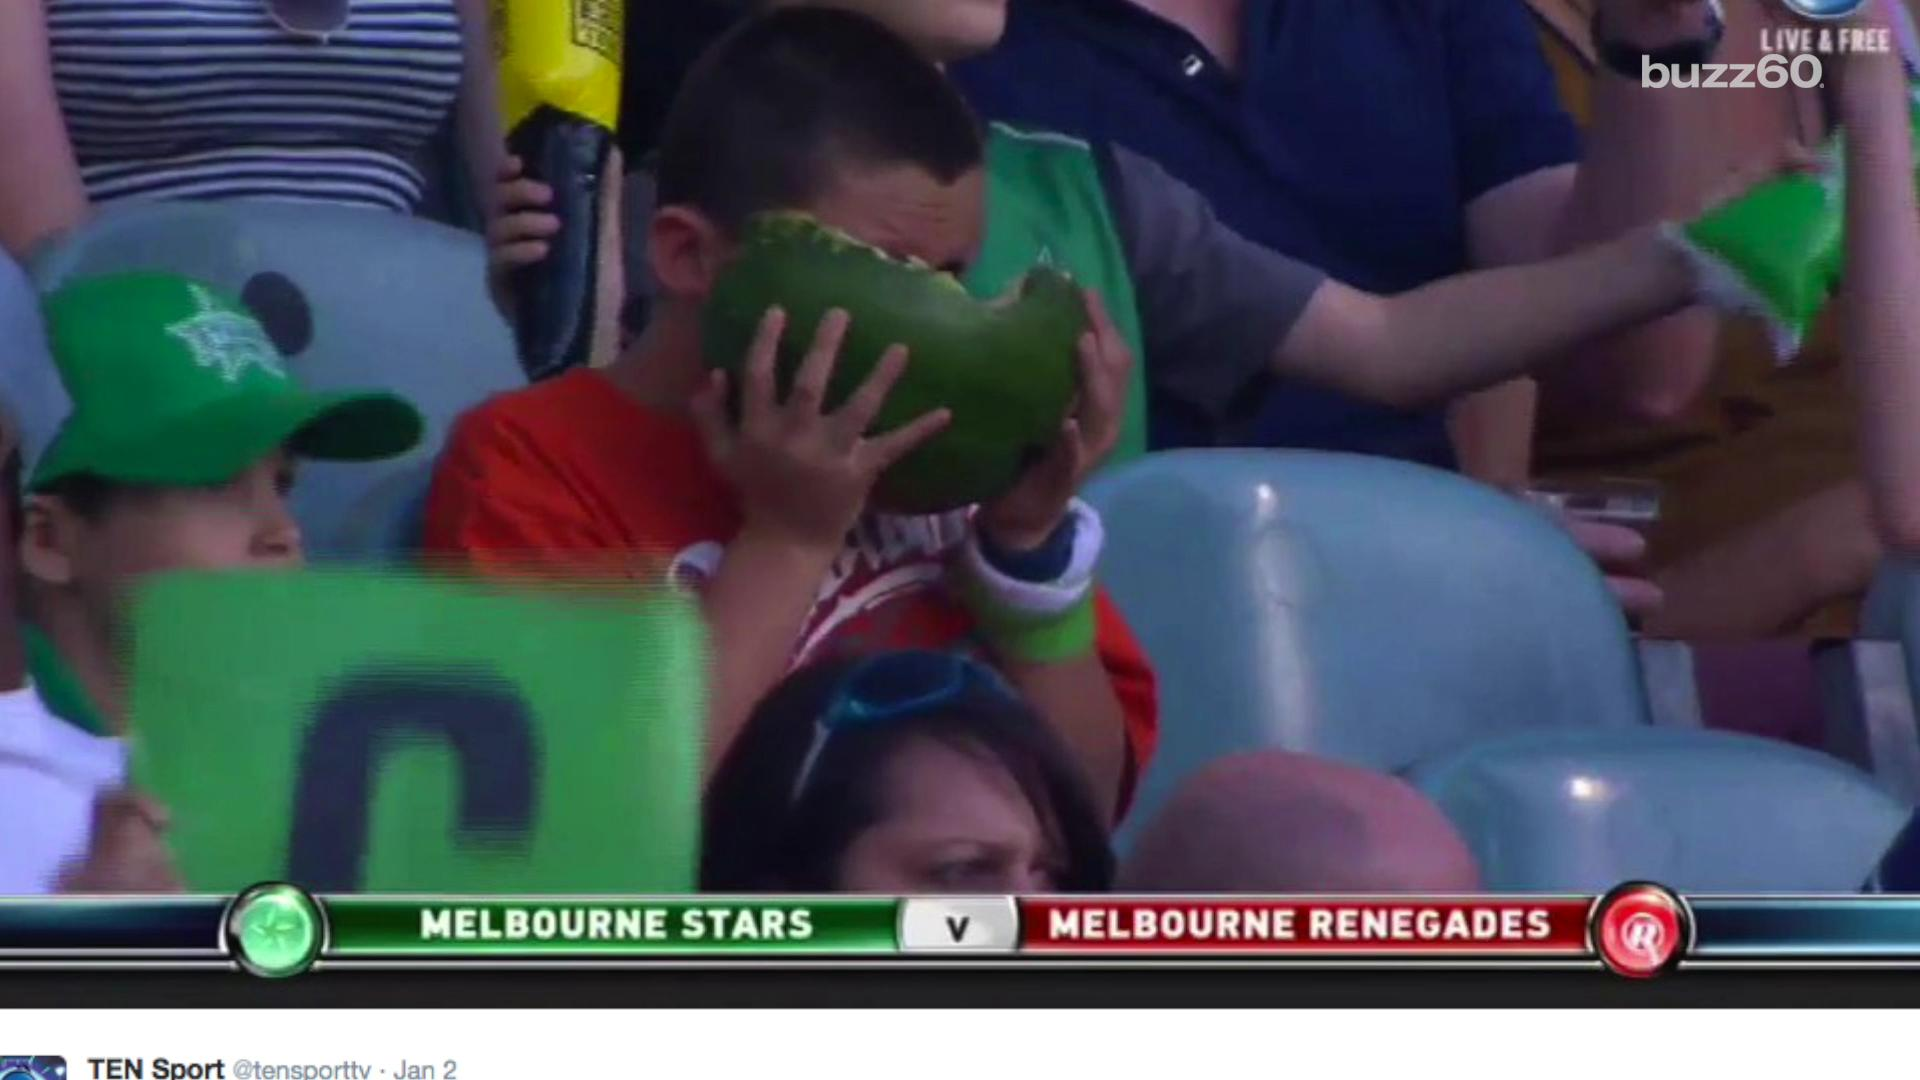 Hilarious video of a kid trying to eat an entire watermelon, skin and all, at a cricket match has gone viral. He's been dubbed, #WatermelonBoy, with countless memes and TV appearances to his name. Sean Dowling (@seandowlingtv) has more.